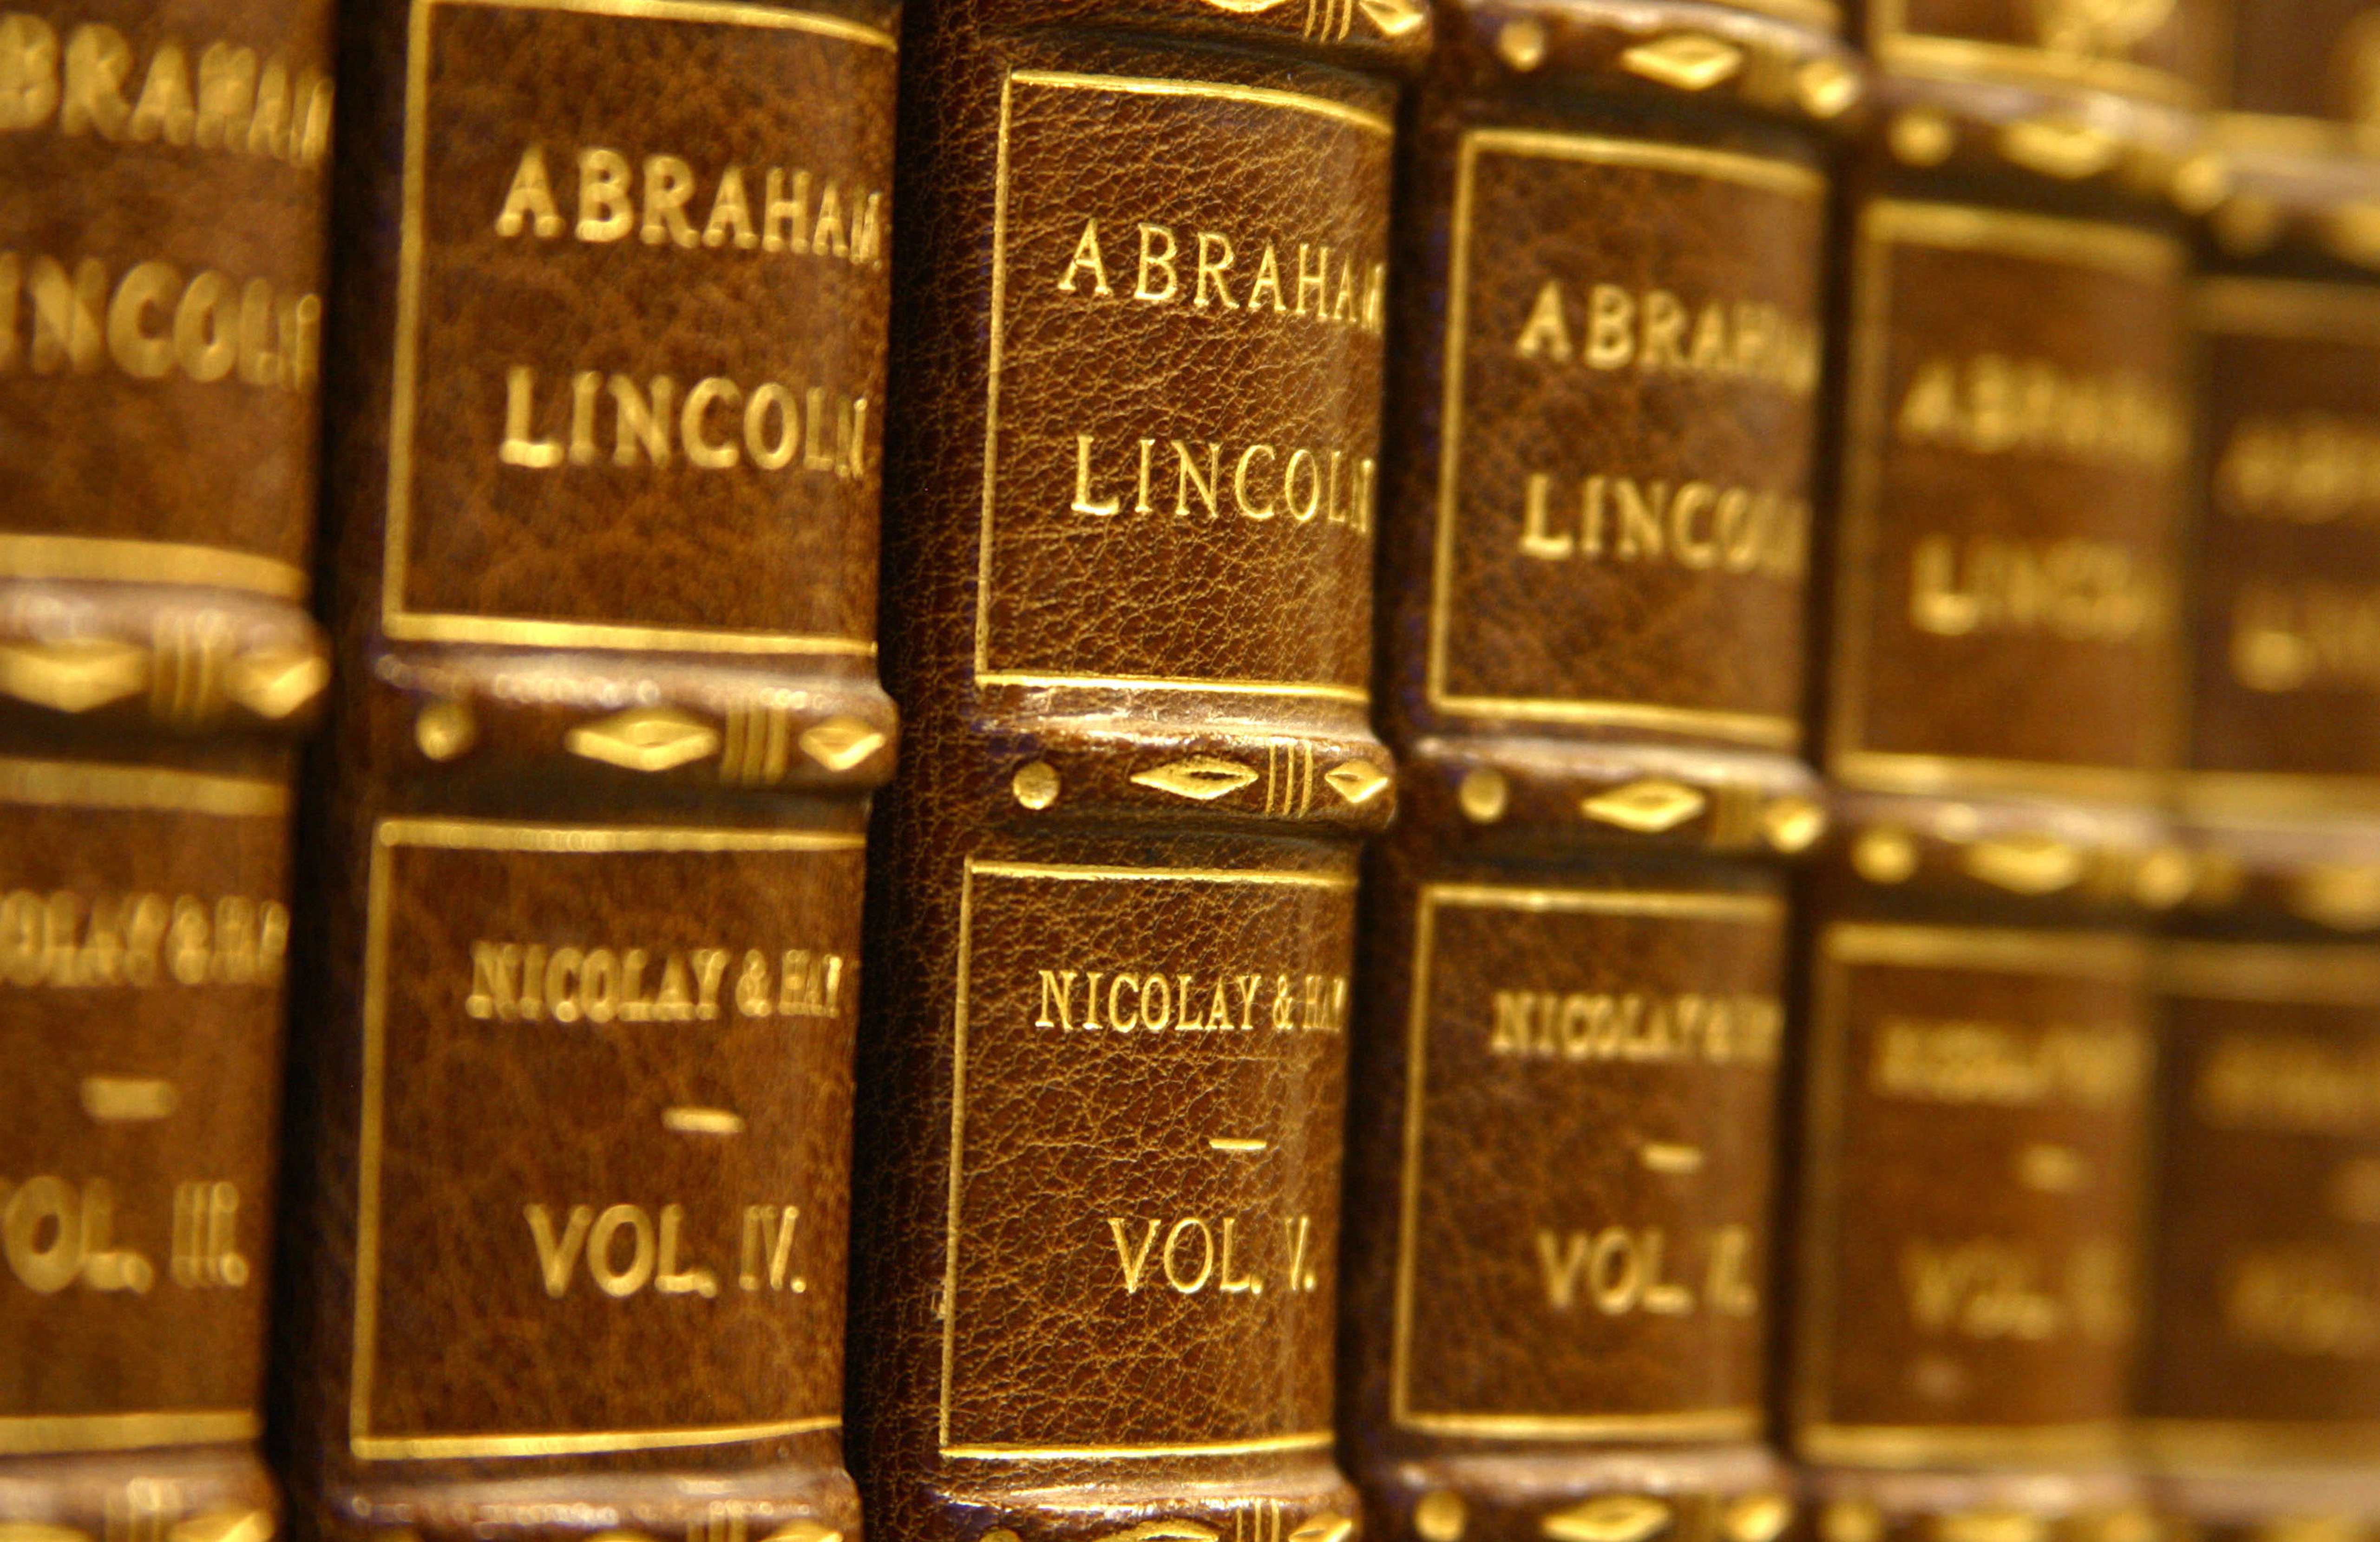 the lincoln douglas debates of 1858 essay Lincoln-douglas debates of 1858  the lincoln douglas debates of 1858: interactive map activity  write a one page essay discussing how population,.